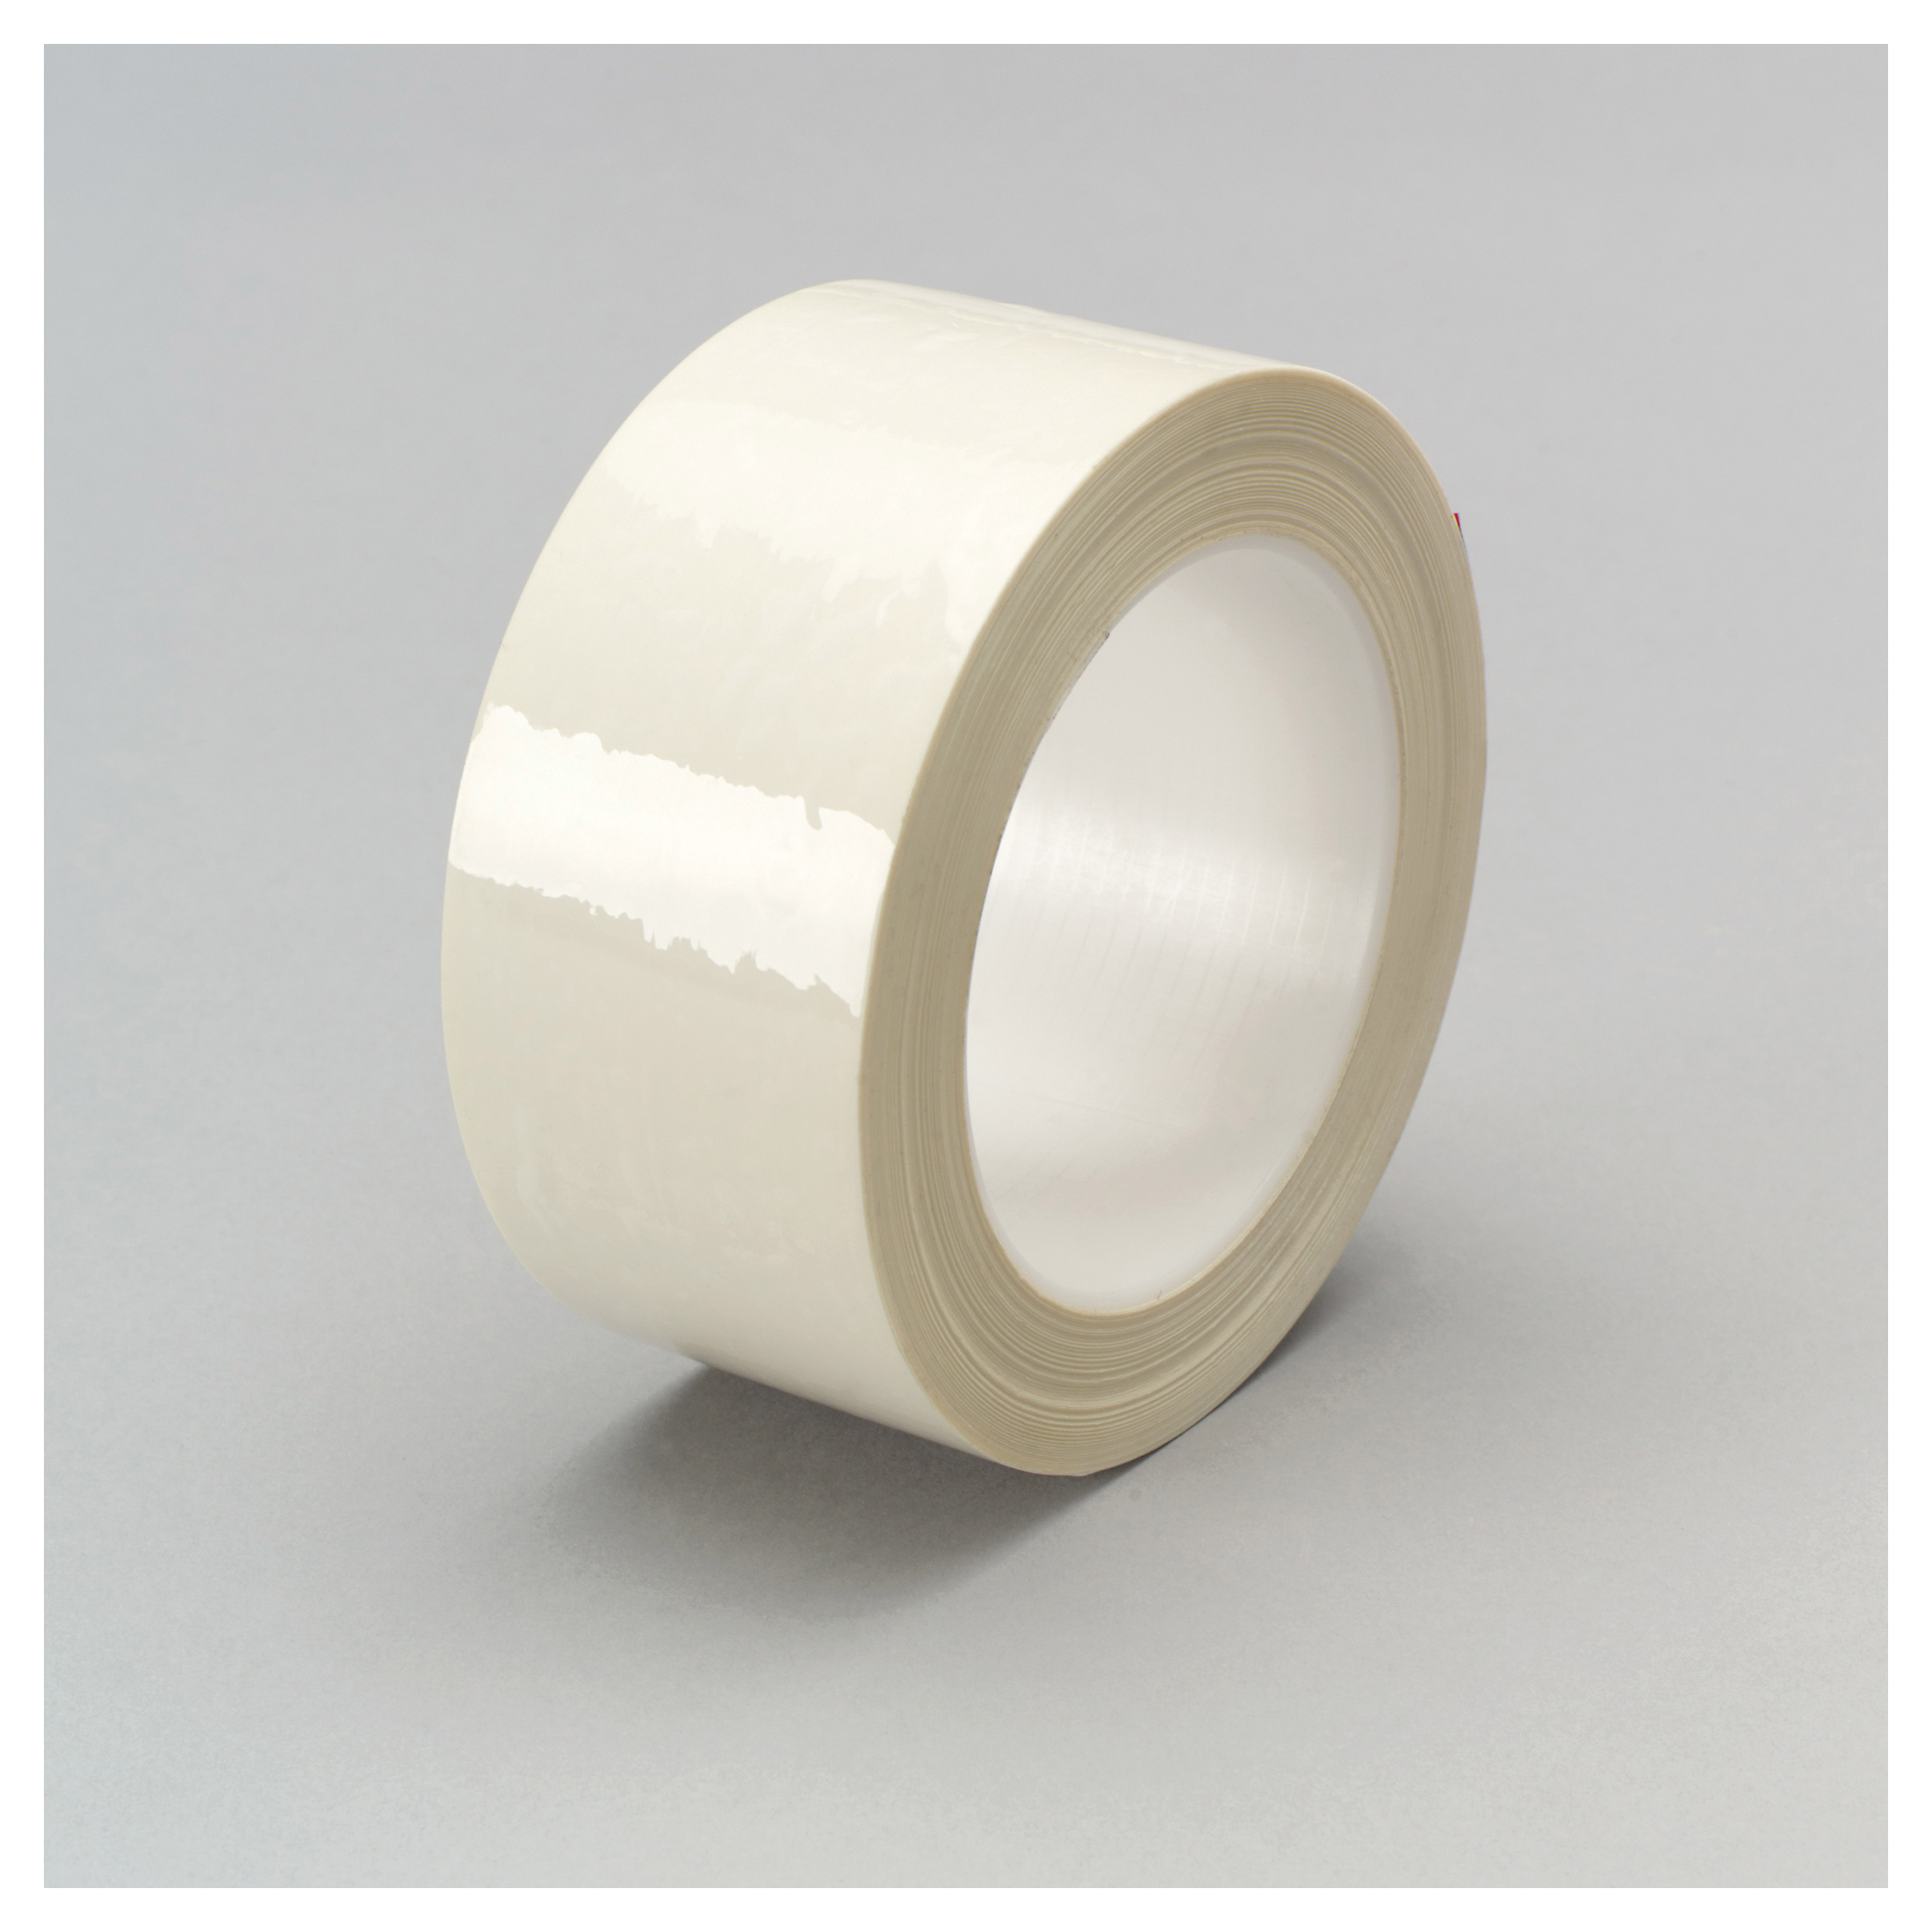 3M™ 021200-24331 High Temperature Film Tape, 72 yd L x 1 in W, 6 mil THK, Rubber Adhesive, Nylon Fiber Backing, White